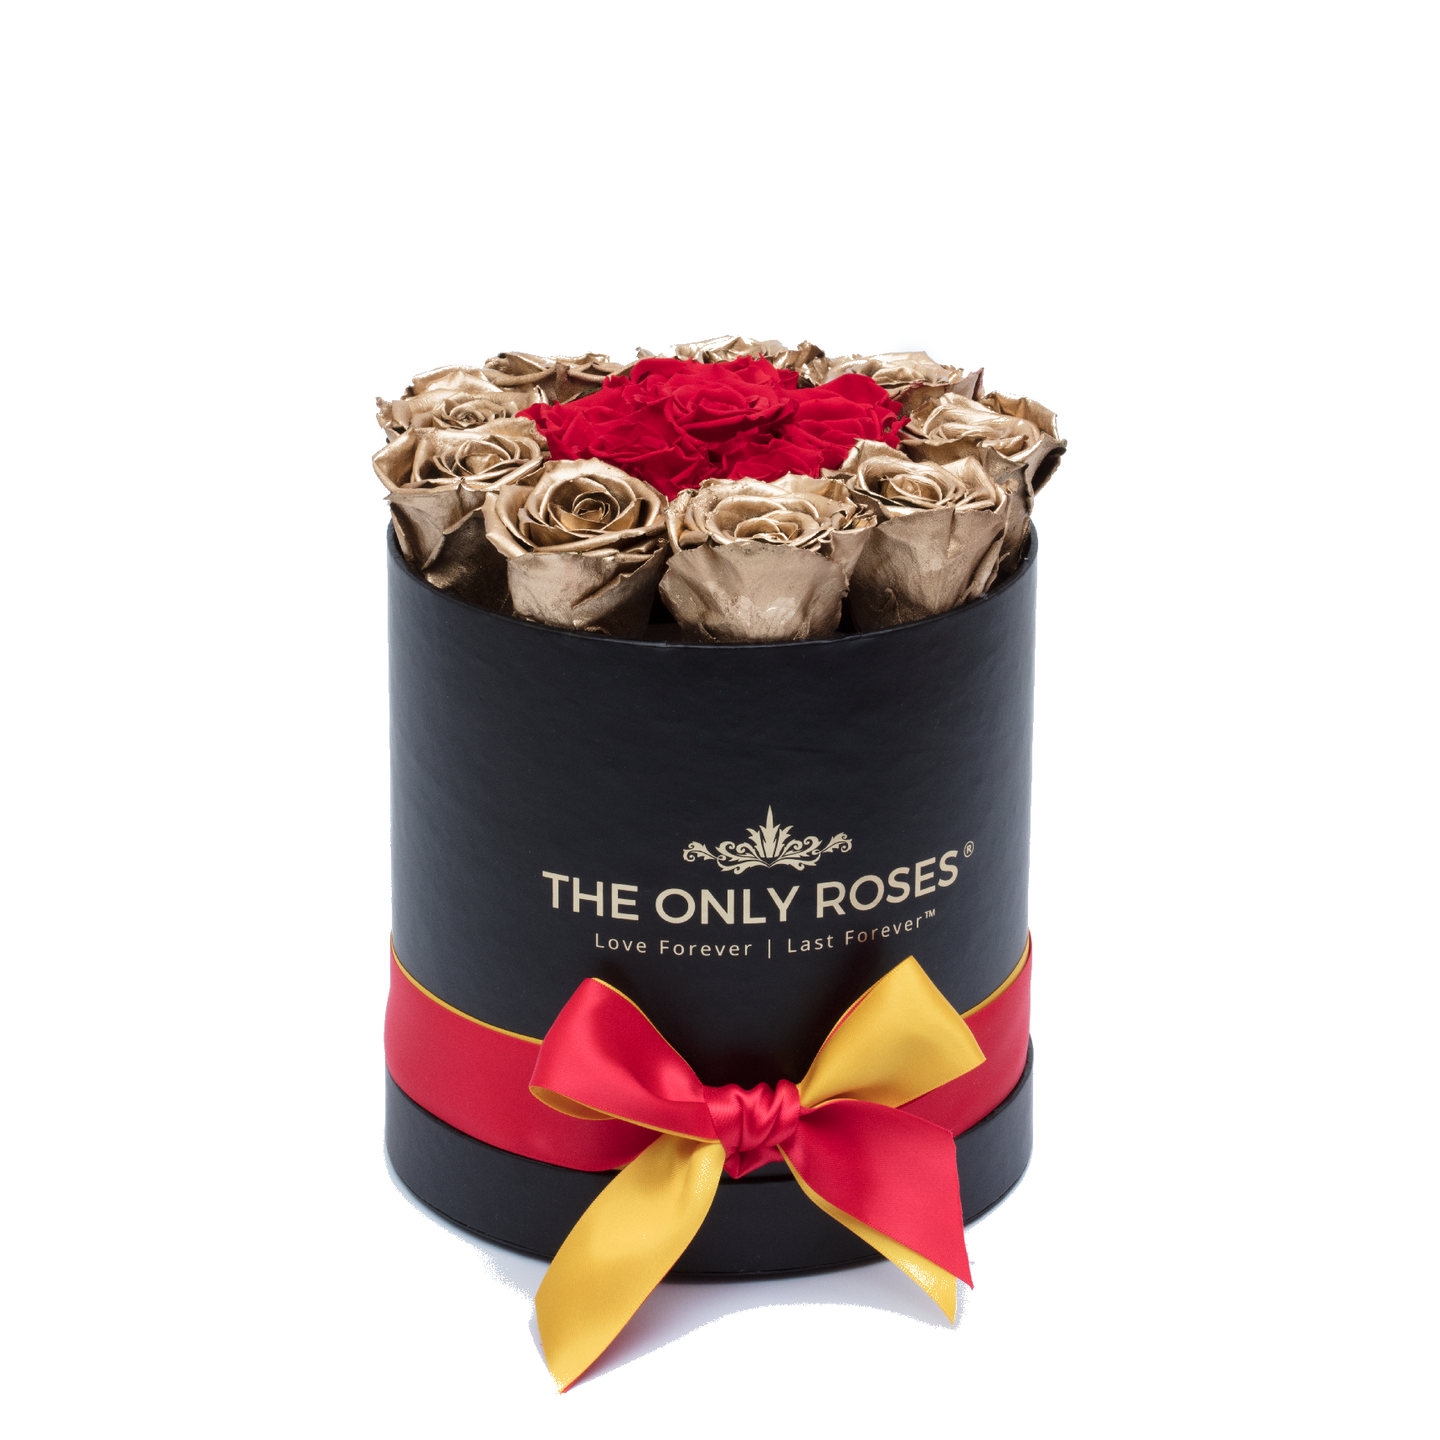 Gold & Red Preserved Roses | Small Round Black Huggy Rose Box - The Only Roses